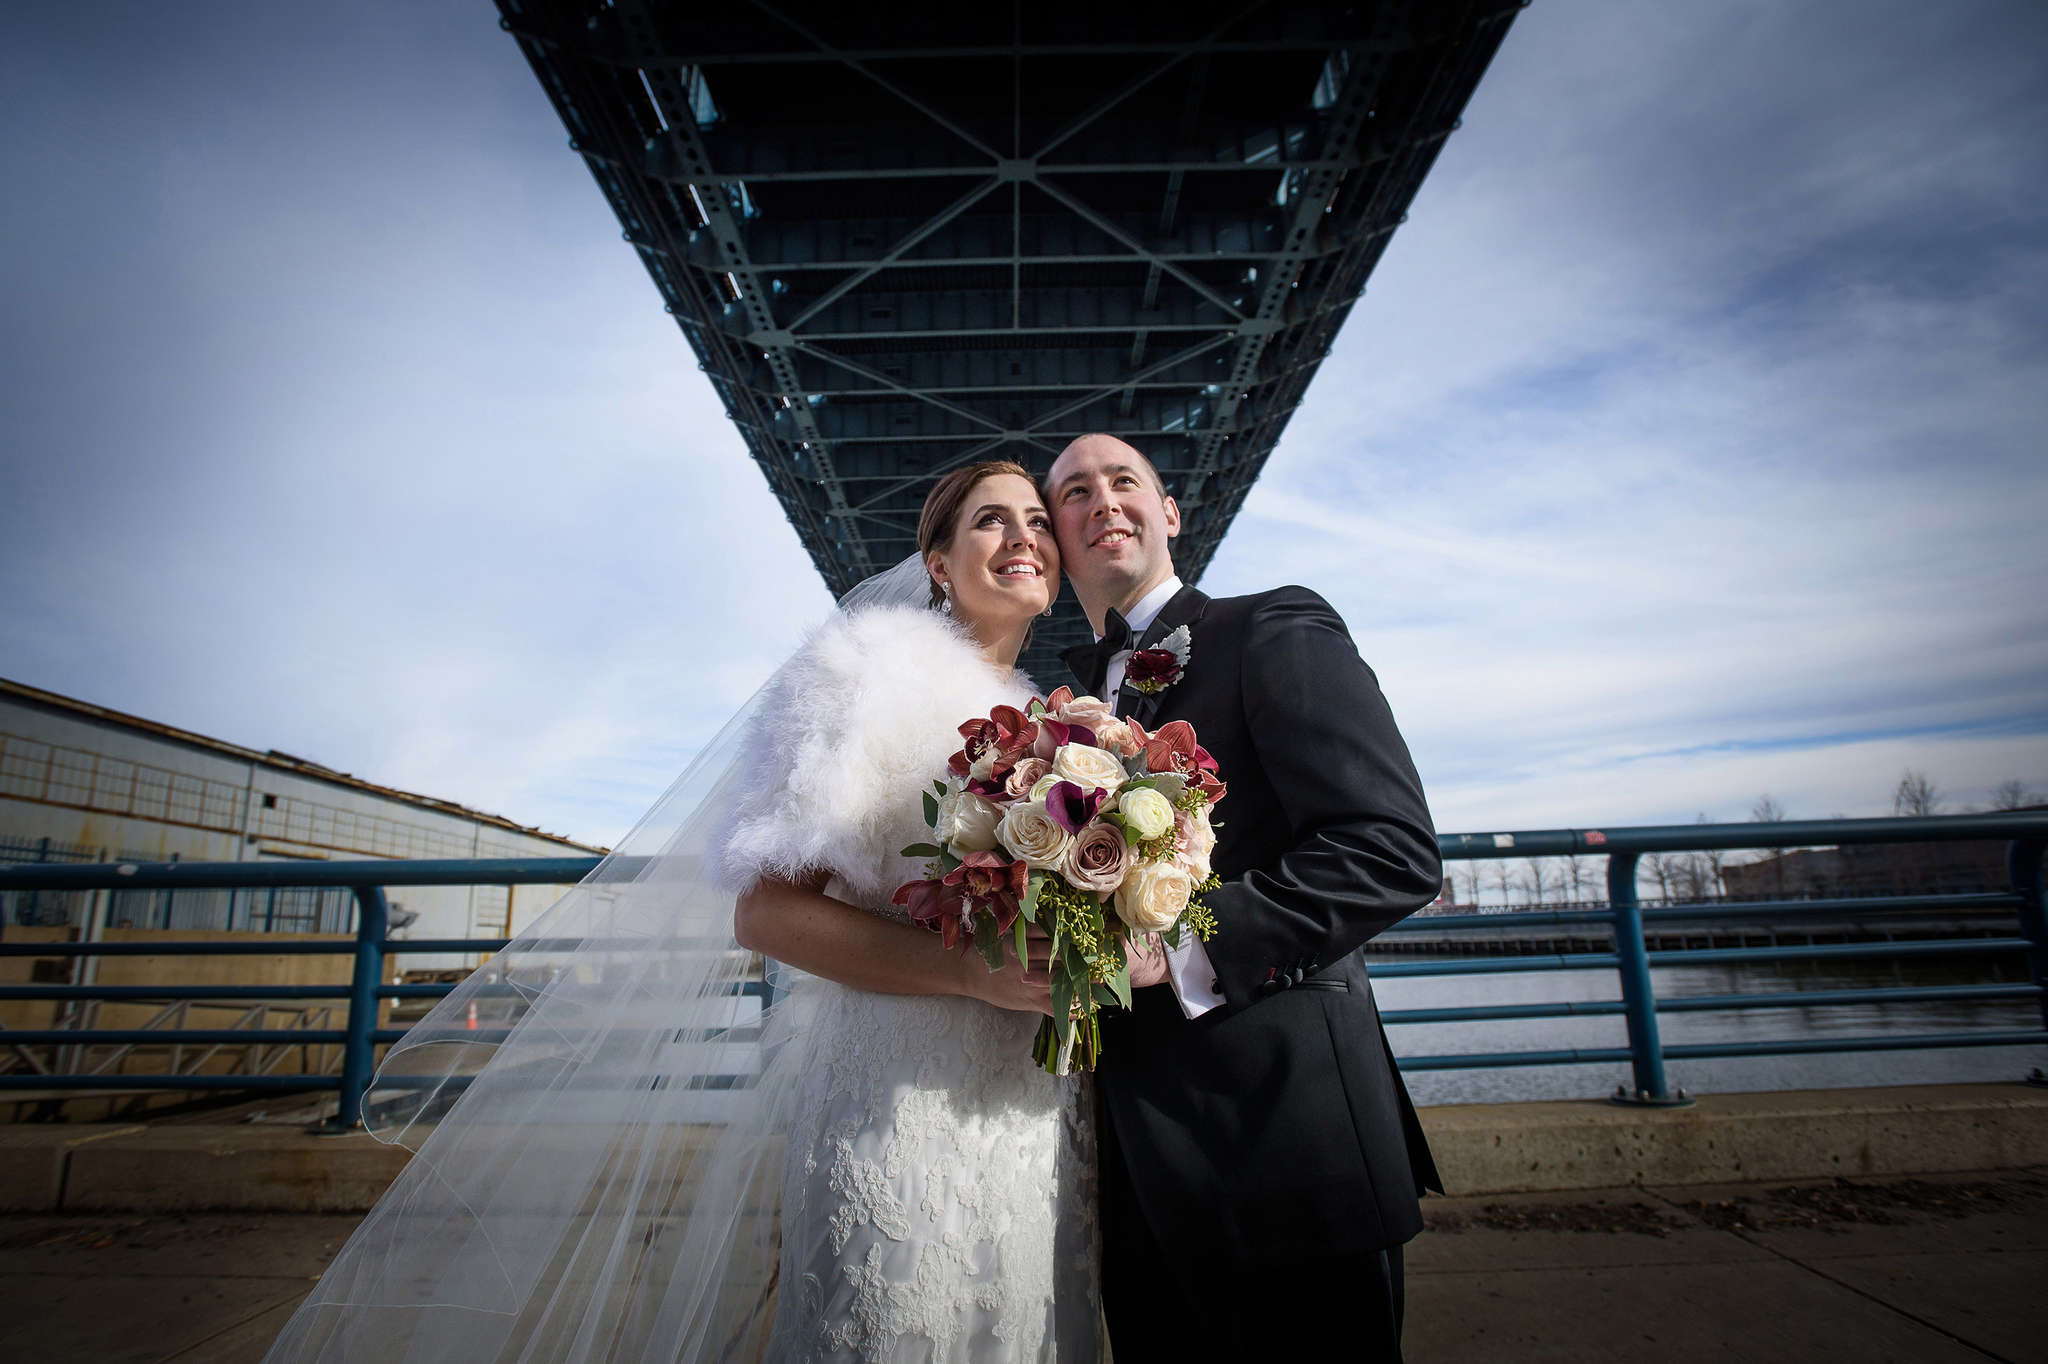 Bride Lauren Moore and groom Charles Concodora underneath the Ben Franklin Bridge on their wedding day, Feb. 6, 2016.